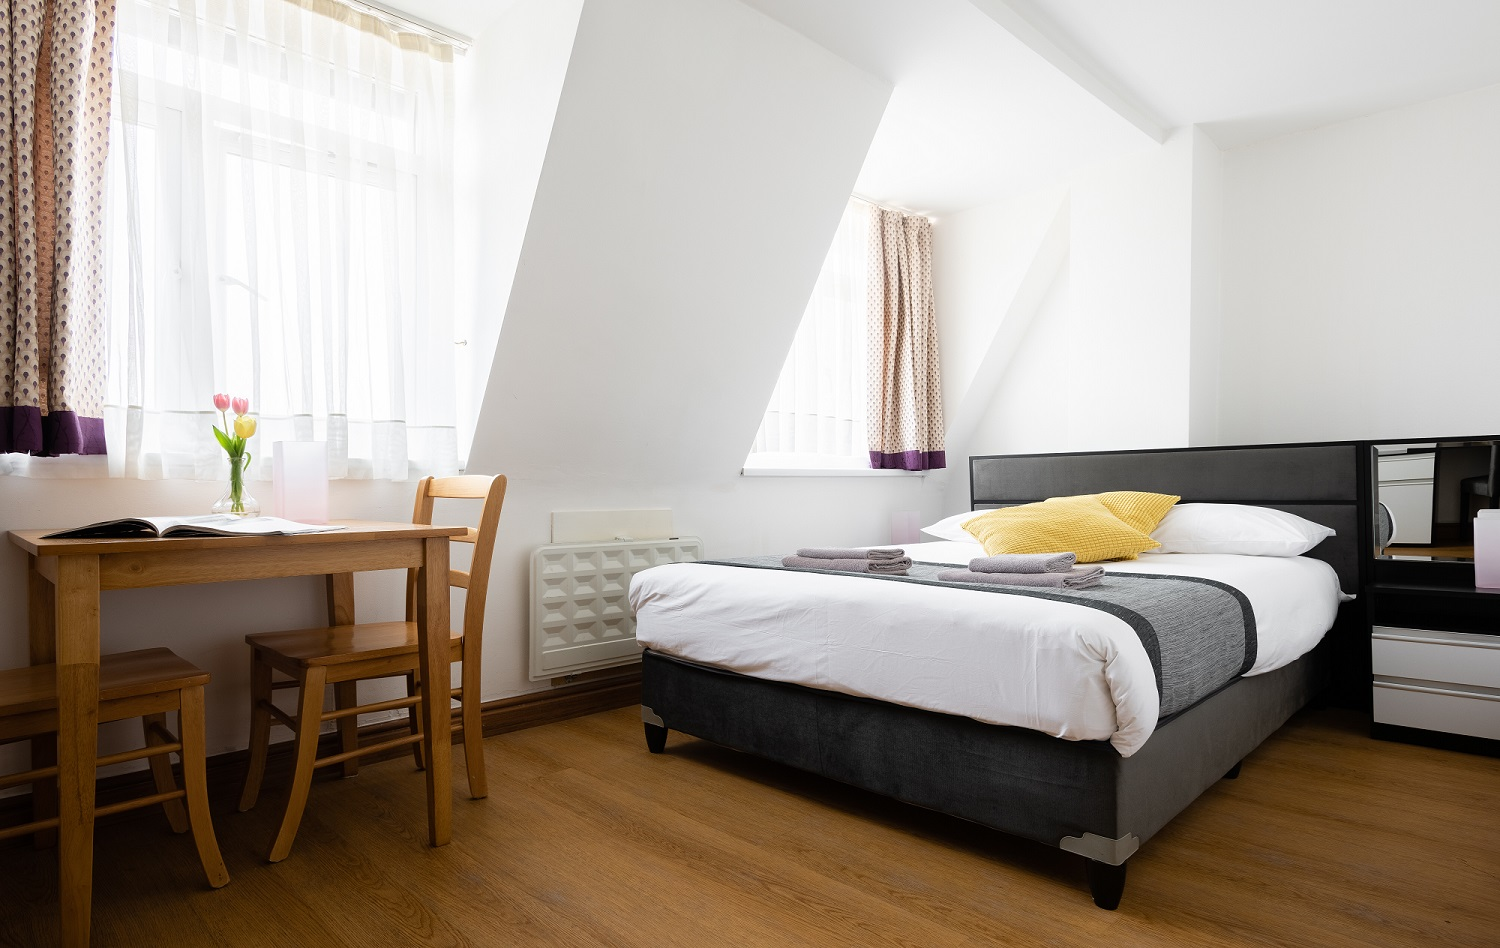 Central-Hoxton-Shoreditch-Aparthotel-East-London---Cool-Serviced-Apartments-London-All-Bills-Incl,-Wifi,-24h-Reception,-Aircon,-Gym,-Parking,-Lift-Access,-Breakfast---Urban-Stay-2